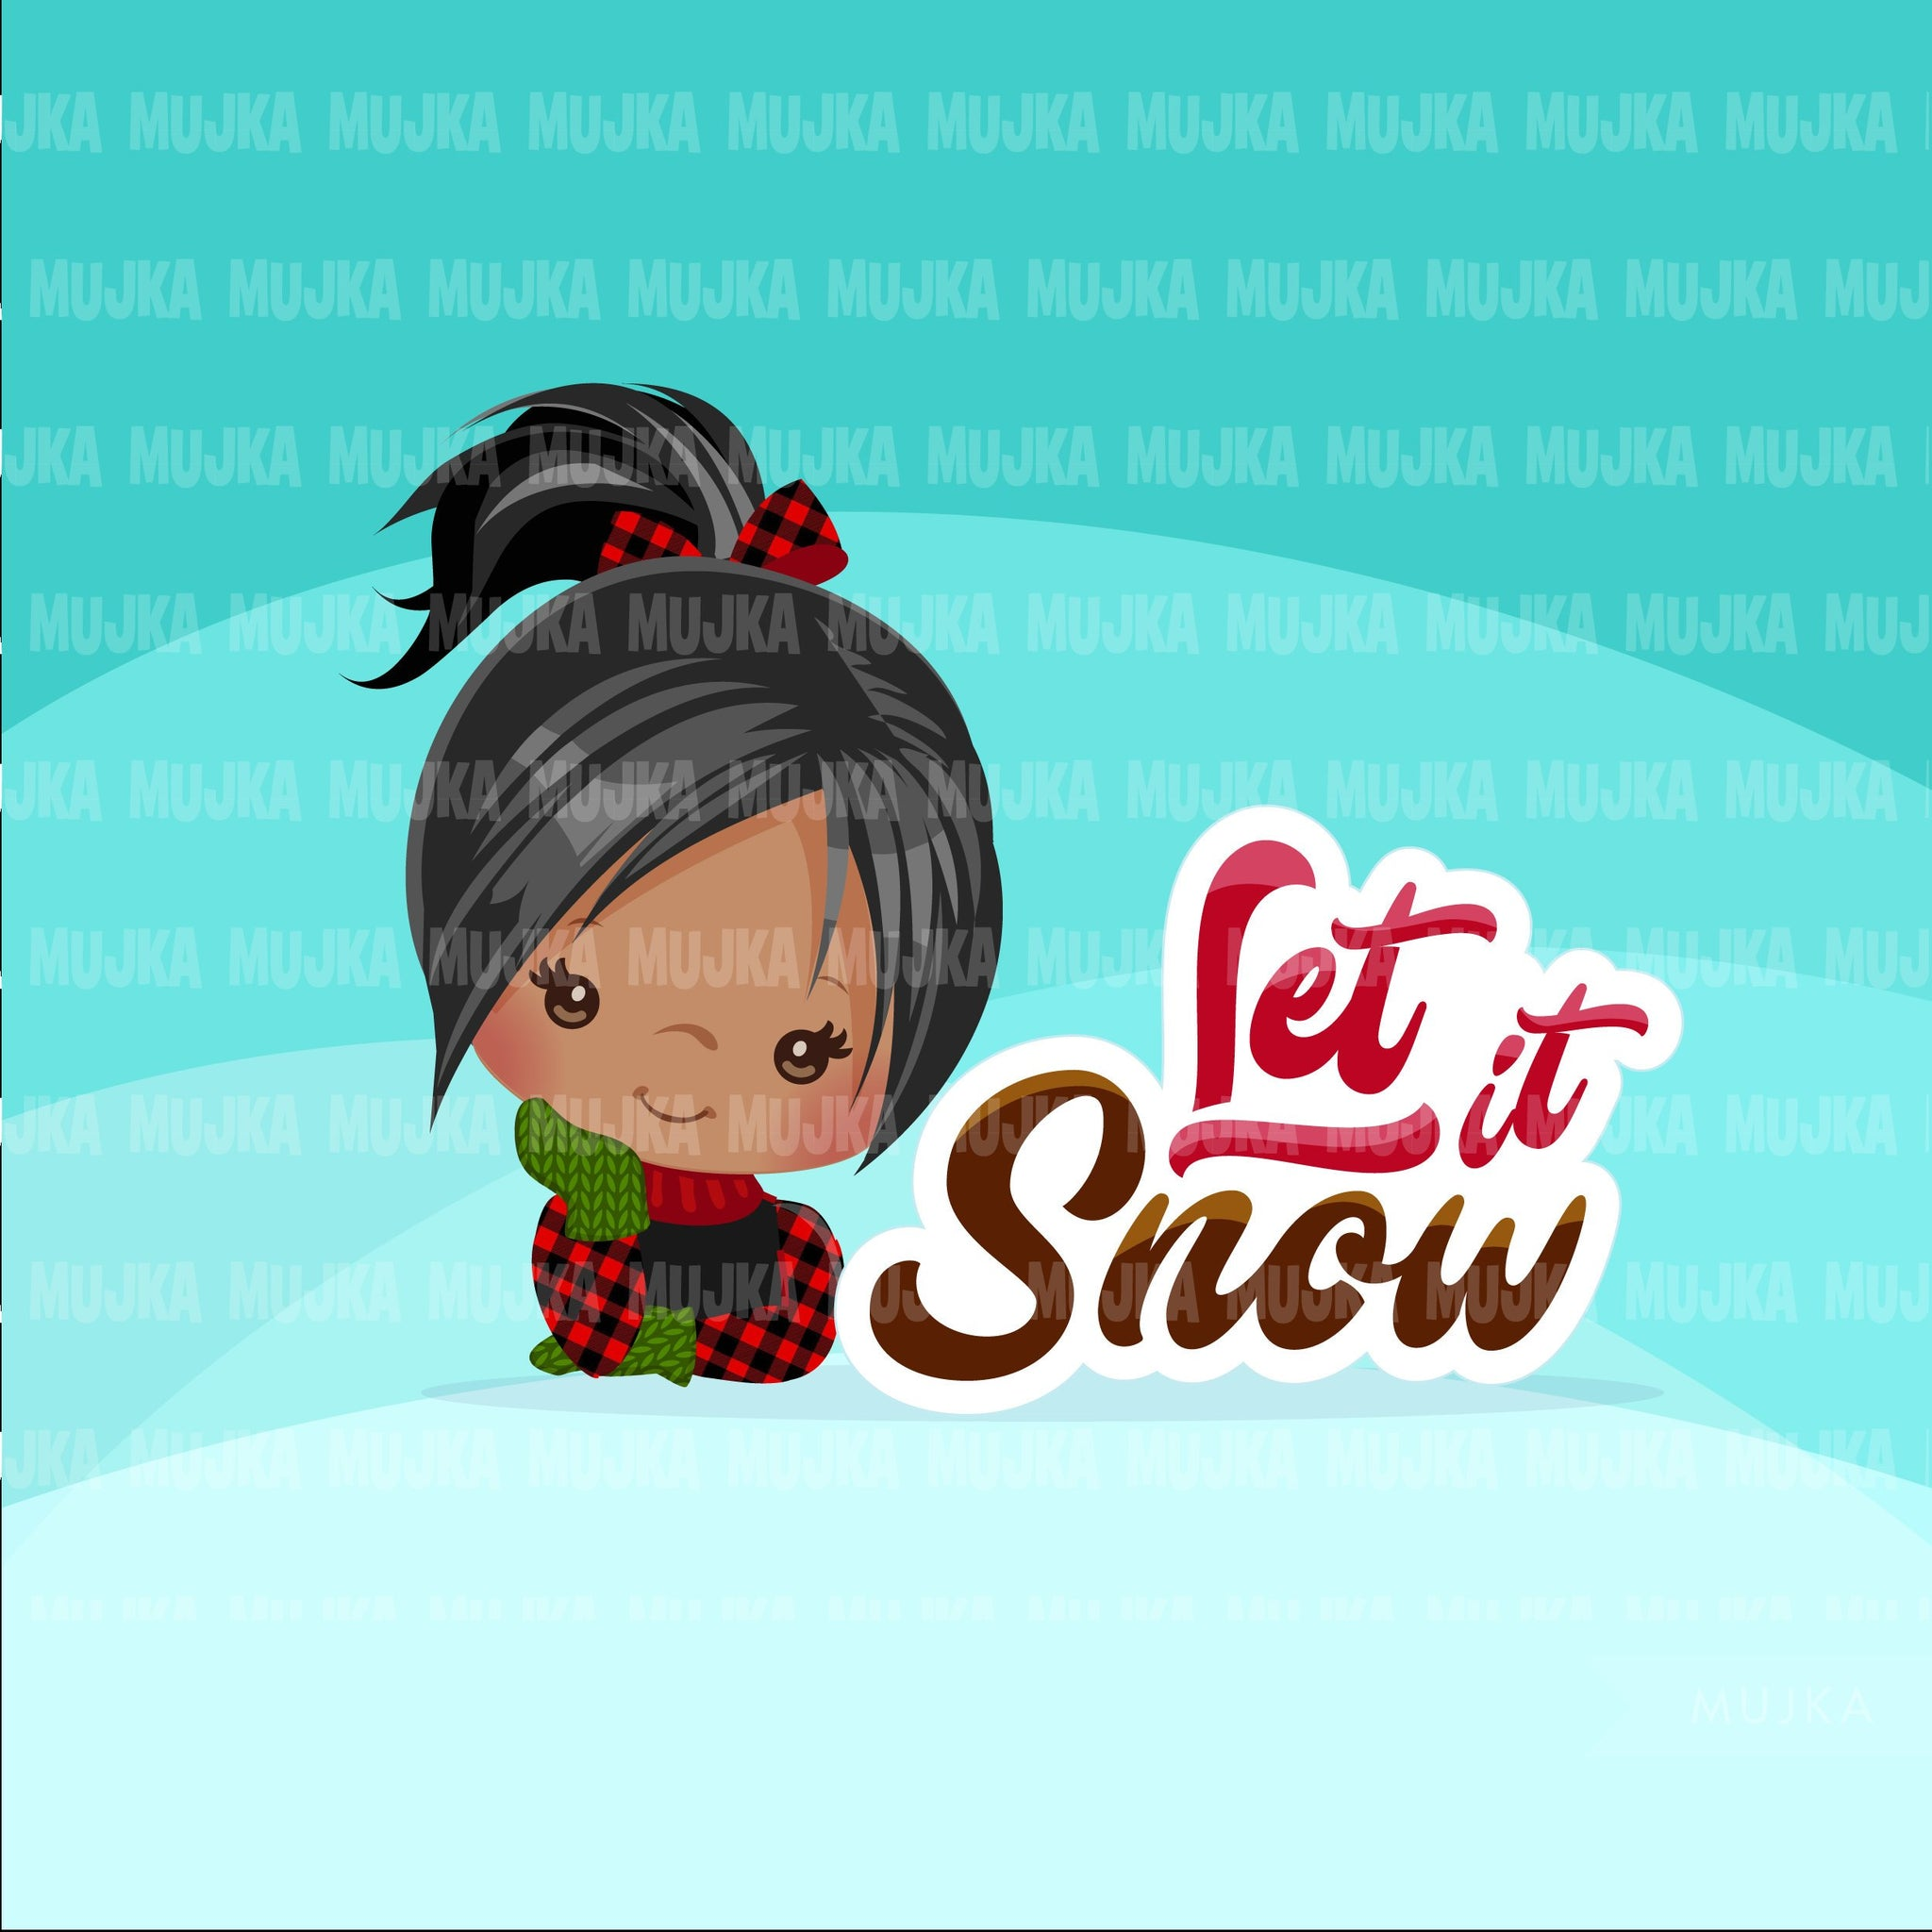 Christmas clipart, let it snow Cute girls with plaid and noel frame, Holiday graphics, clip art